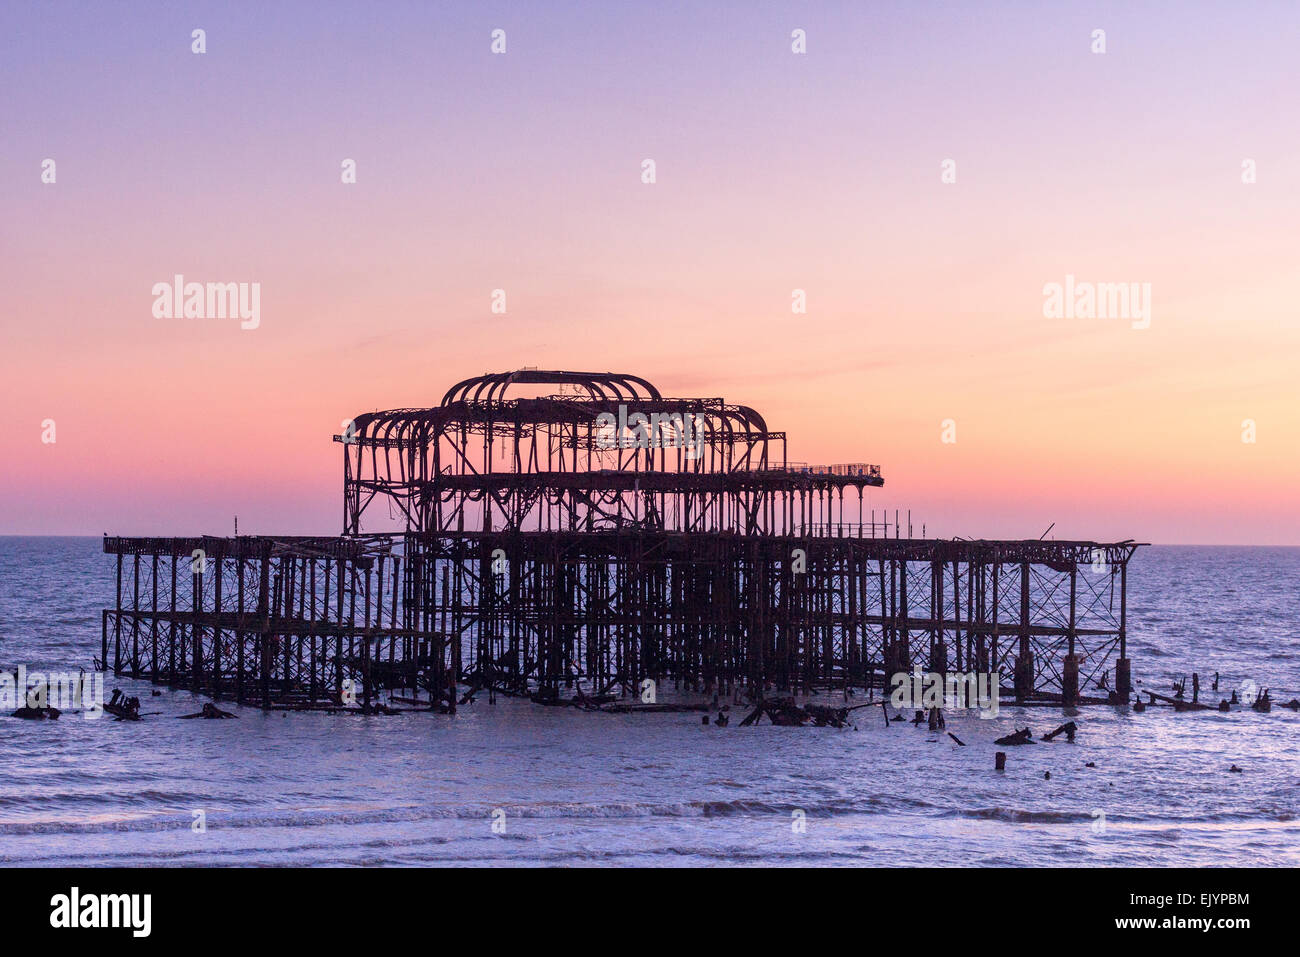 Brighton's skeletal West Pier at sunset with a largely clear brightly colored sky - Stock Image